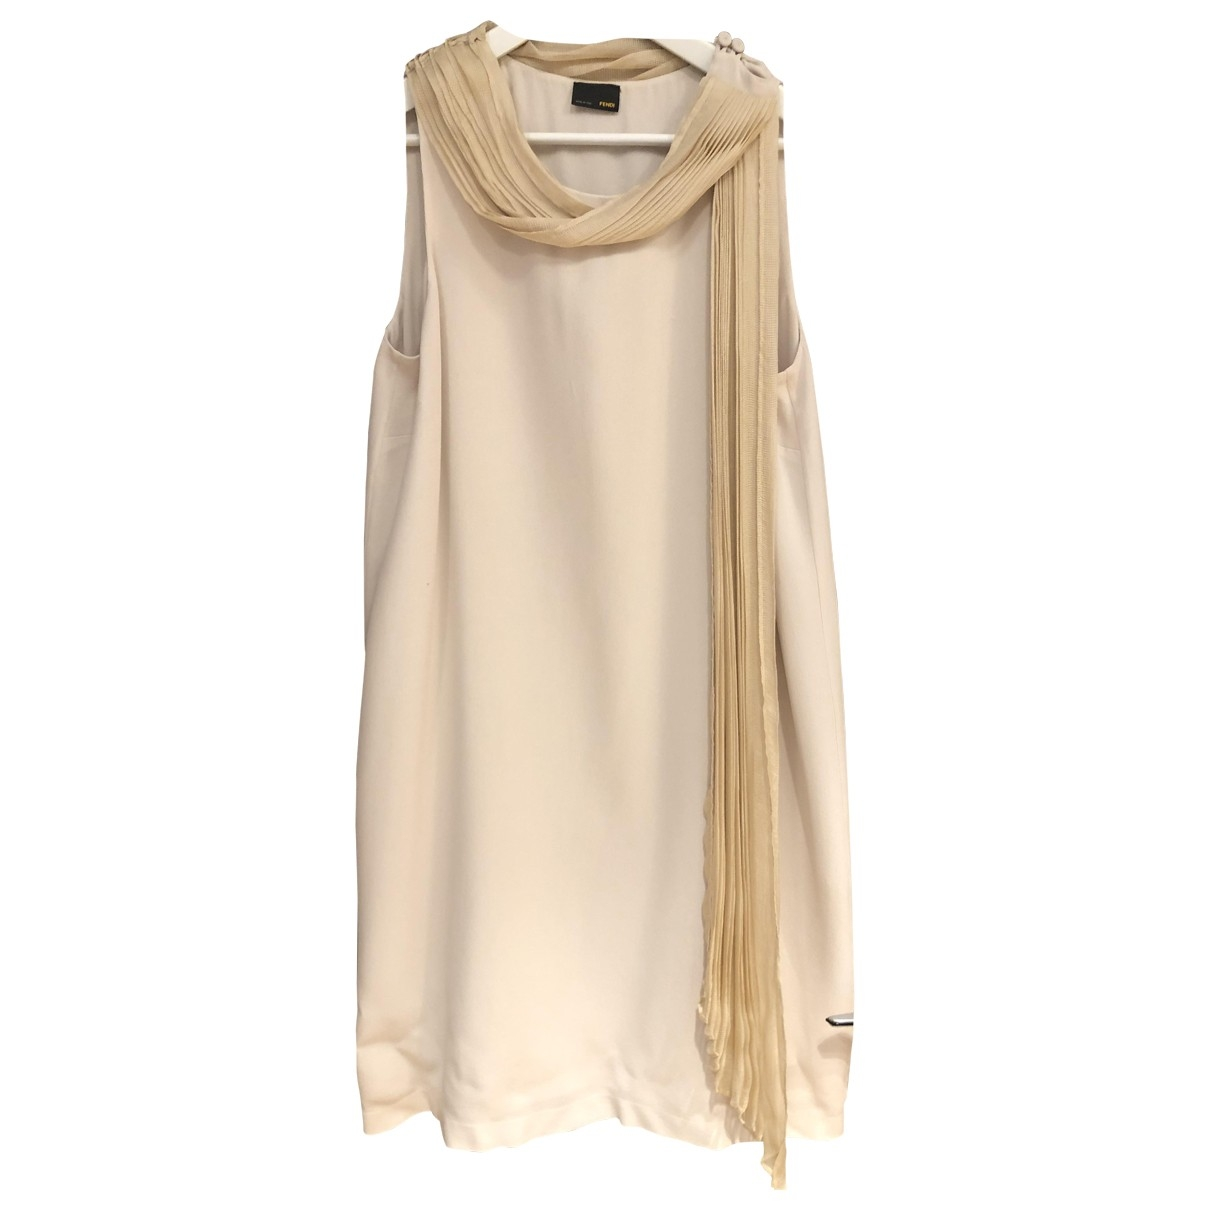 Fendi \N \N Silk dress for Women 44 IT